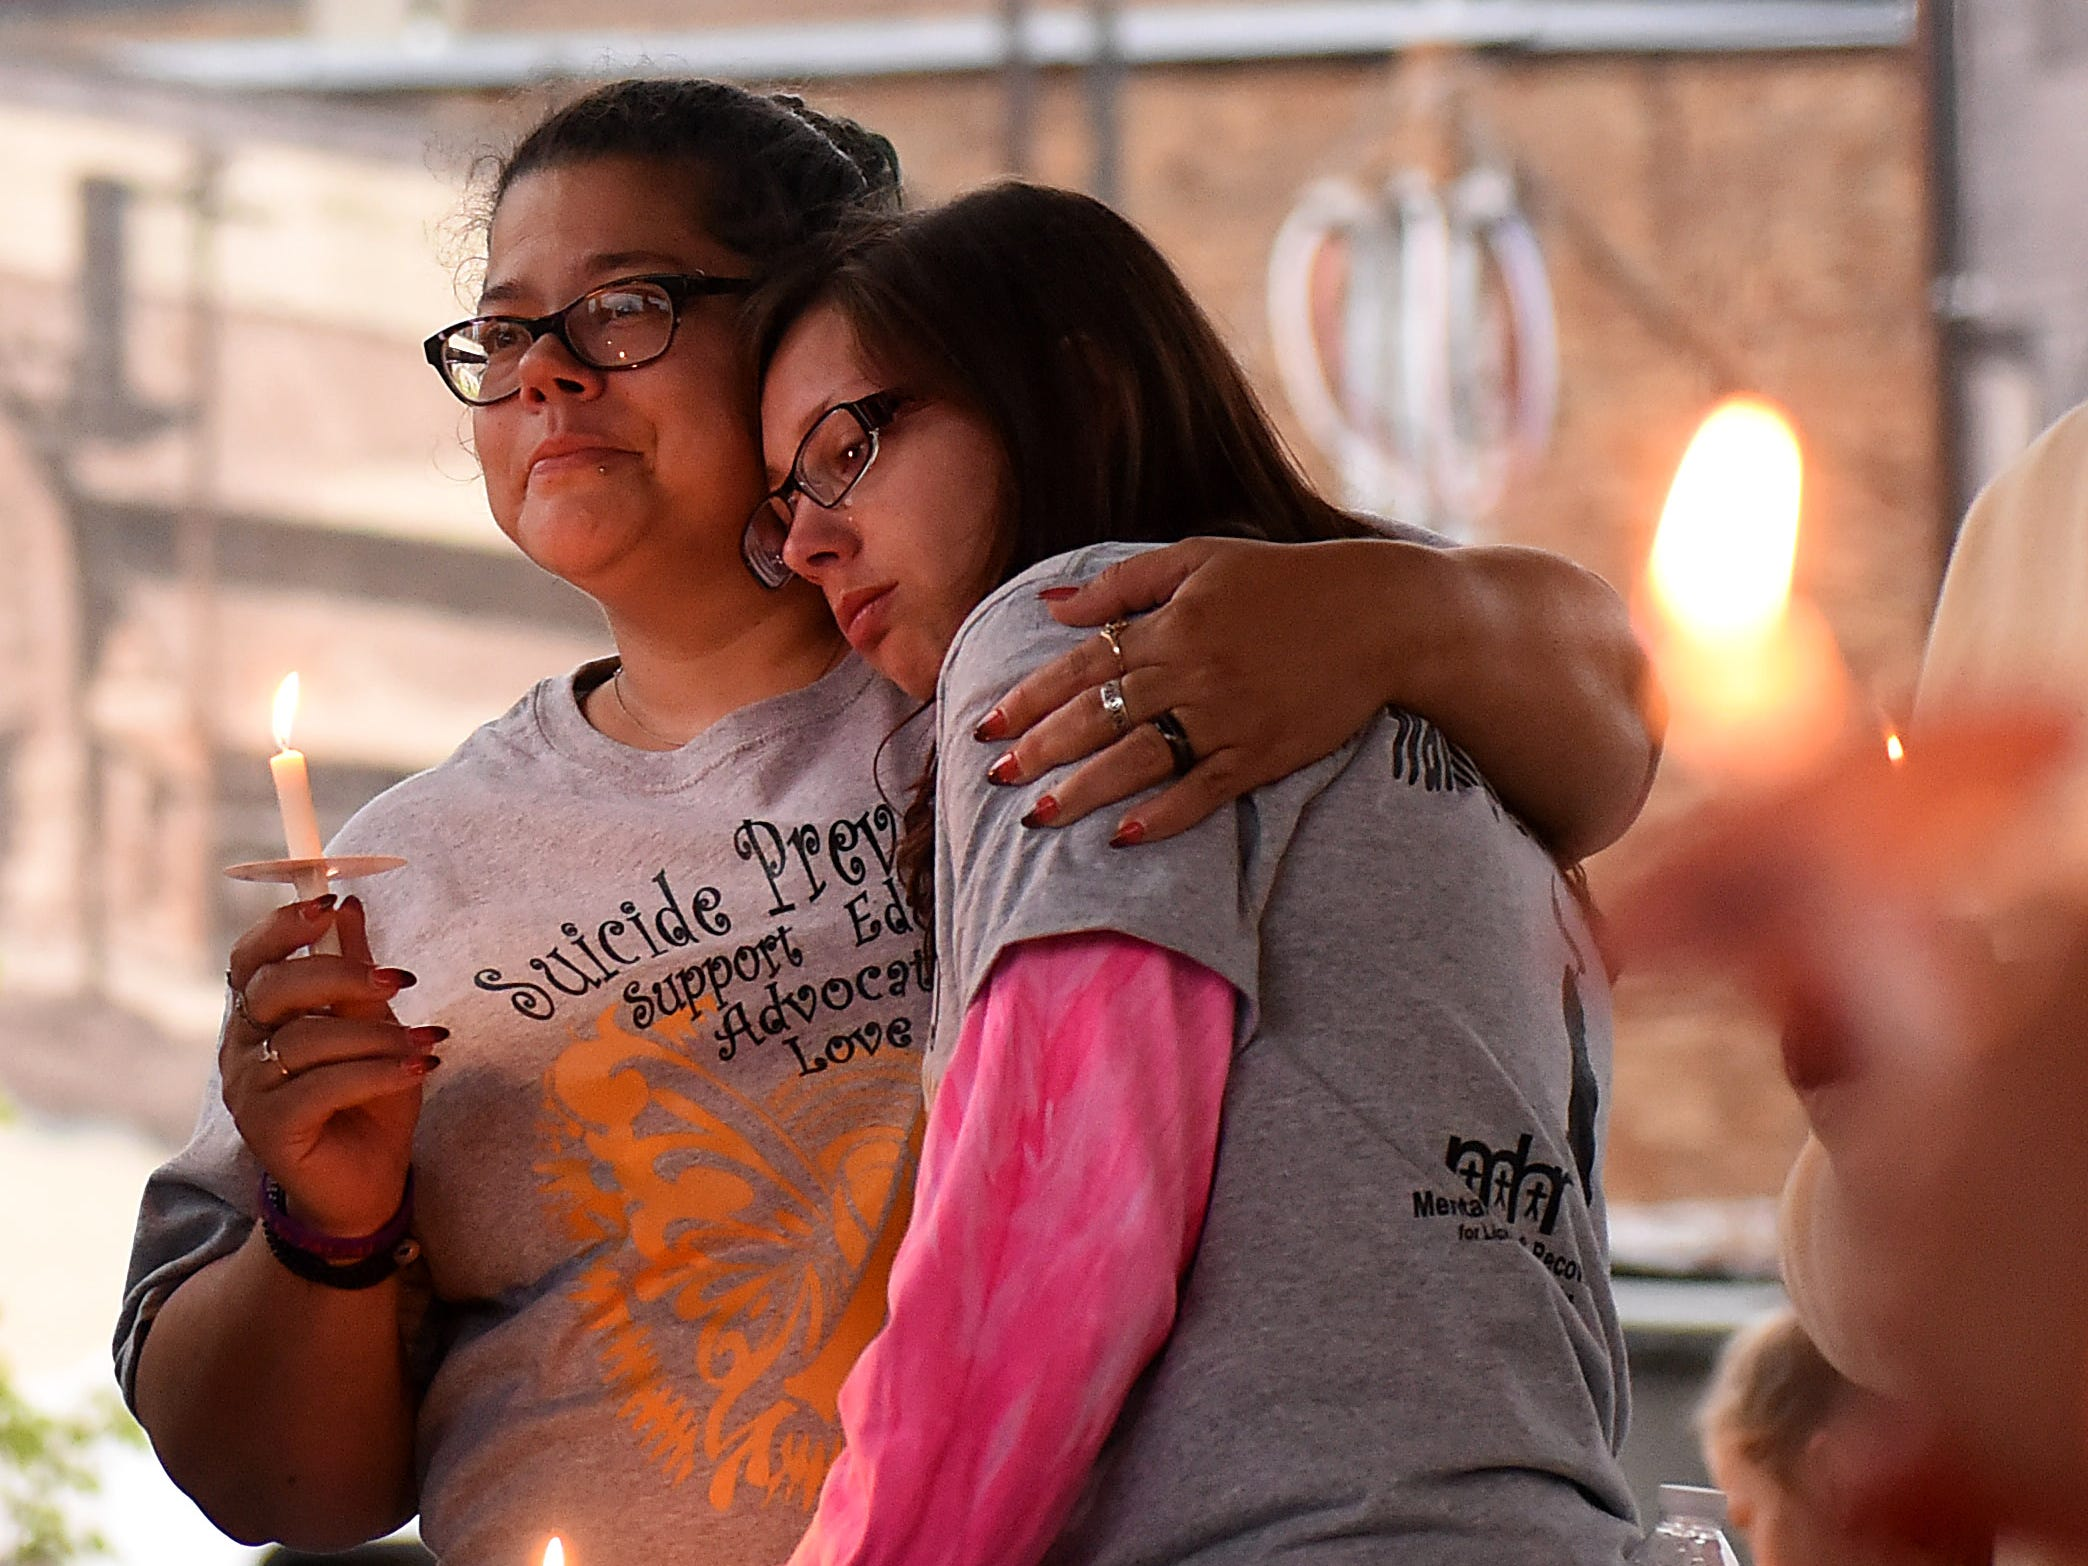 Danielle DeCarlo holds her daughter, Maria DeCarlo, during Mental Health America of Licking County's suicide prevention walk and candlelight vigil on Tuesday, Sept. 11, 2018 at the Canal Market District. Danielle lost her brother in August 2014 and has been attending the event with family every year since his death. The annual event is in recognition of September being Suicide Prevention Awareness month. The event is sponsored by MHA, Licking County Suicide Prevention Coalition, Survivors After Suicide Loss Support Group, and Mental Health & Recovery for Licking and Knox Counties. The Survivors After Suicide Loss Support Group meets at 6:30 p.m. the second Tuesday of every month at Mental Health America of Licking County, 65 Messimer Dr. in Newark.